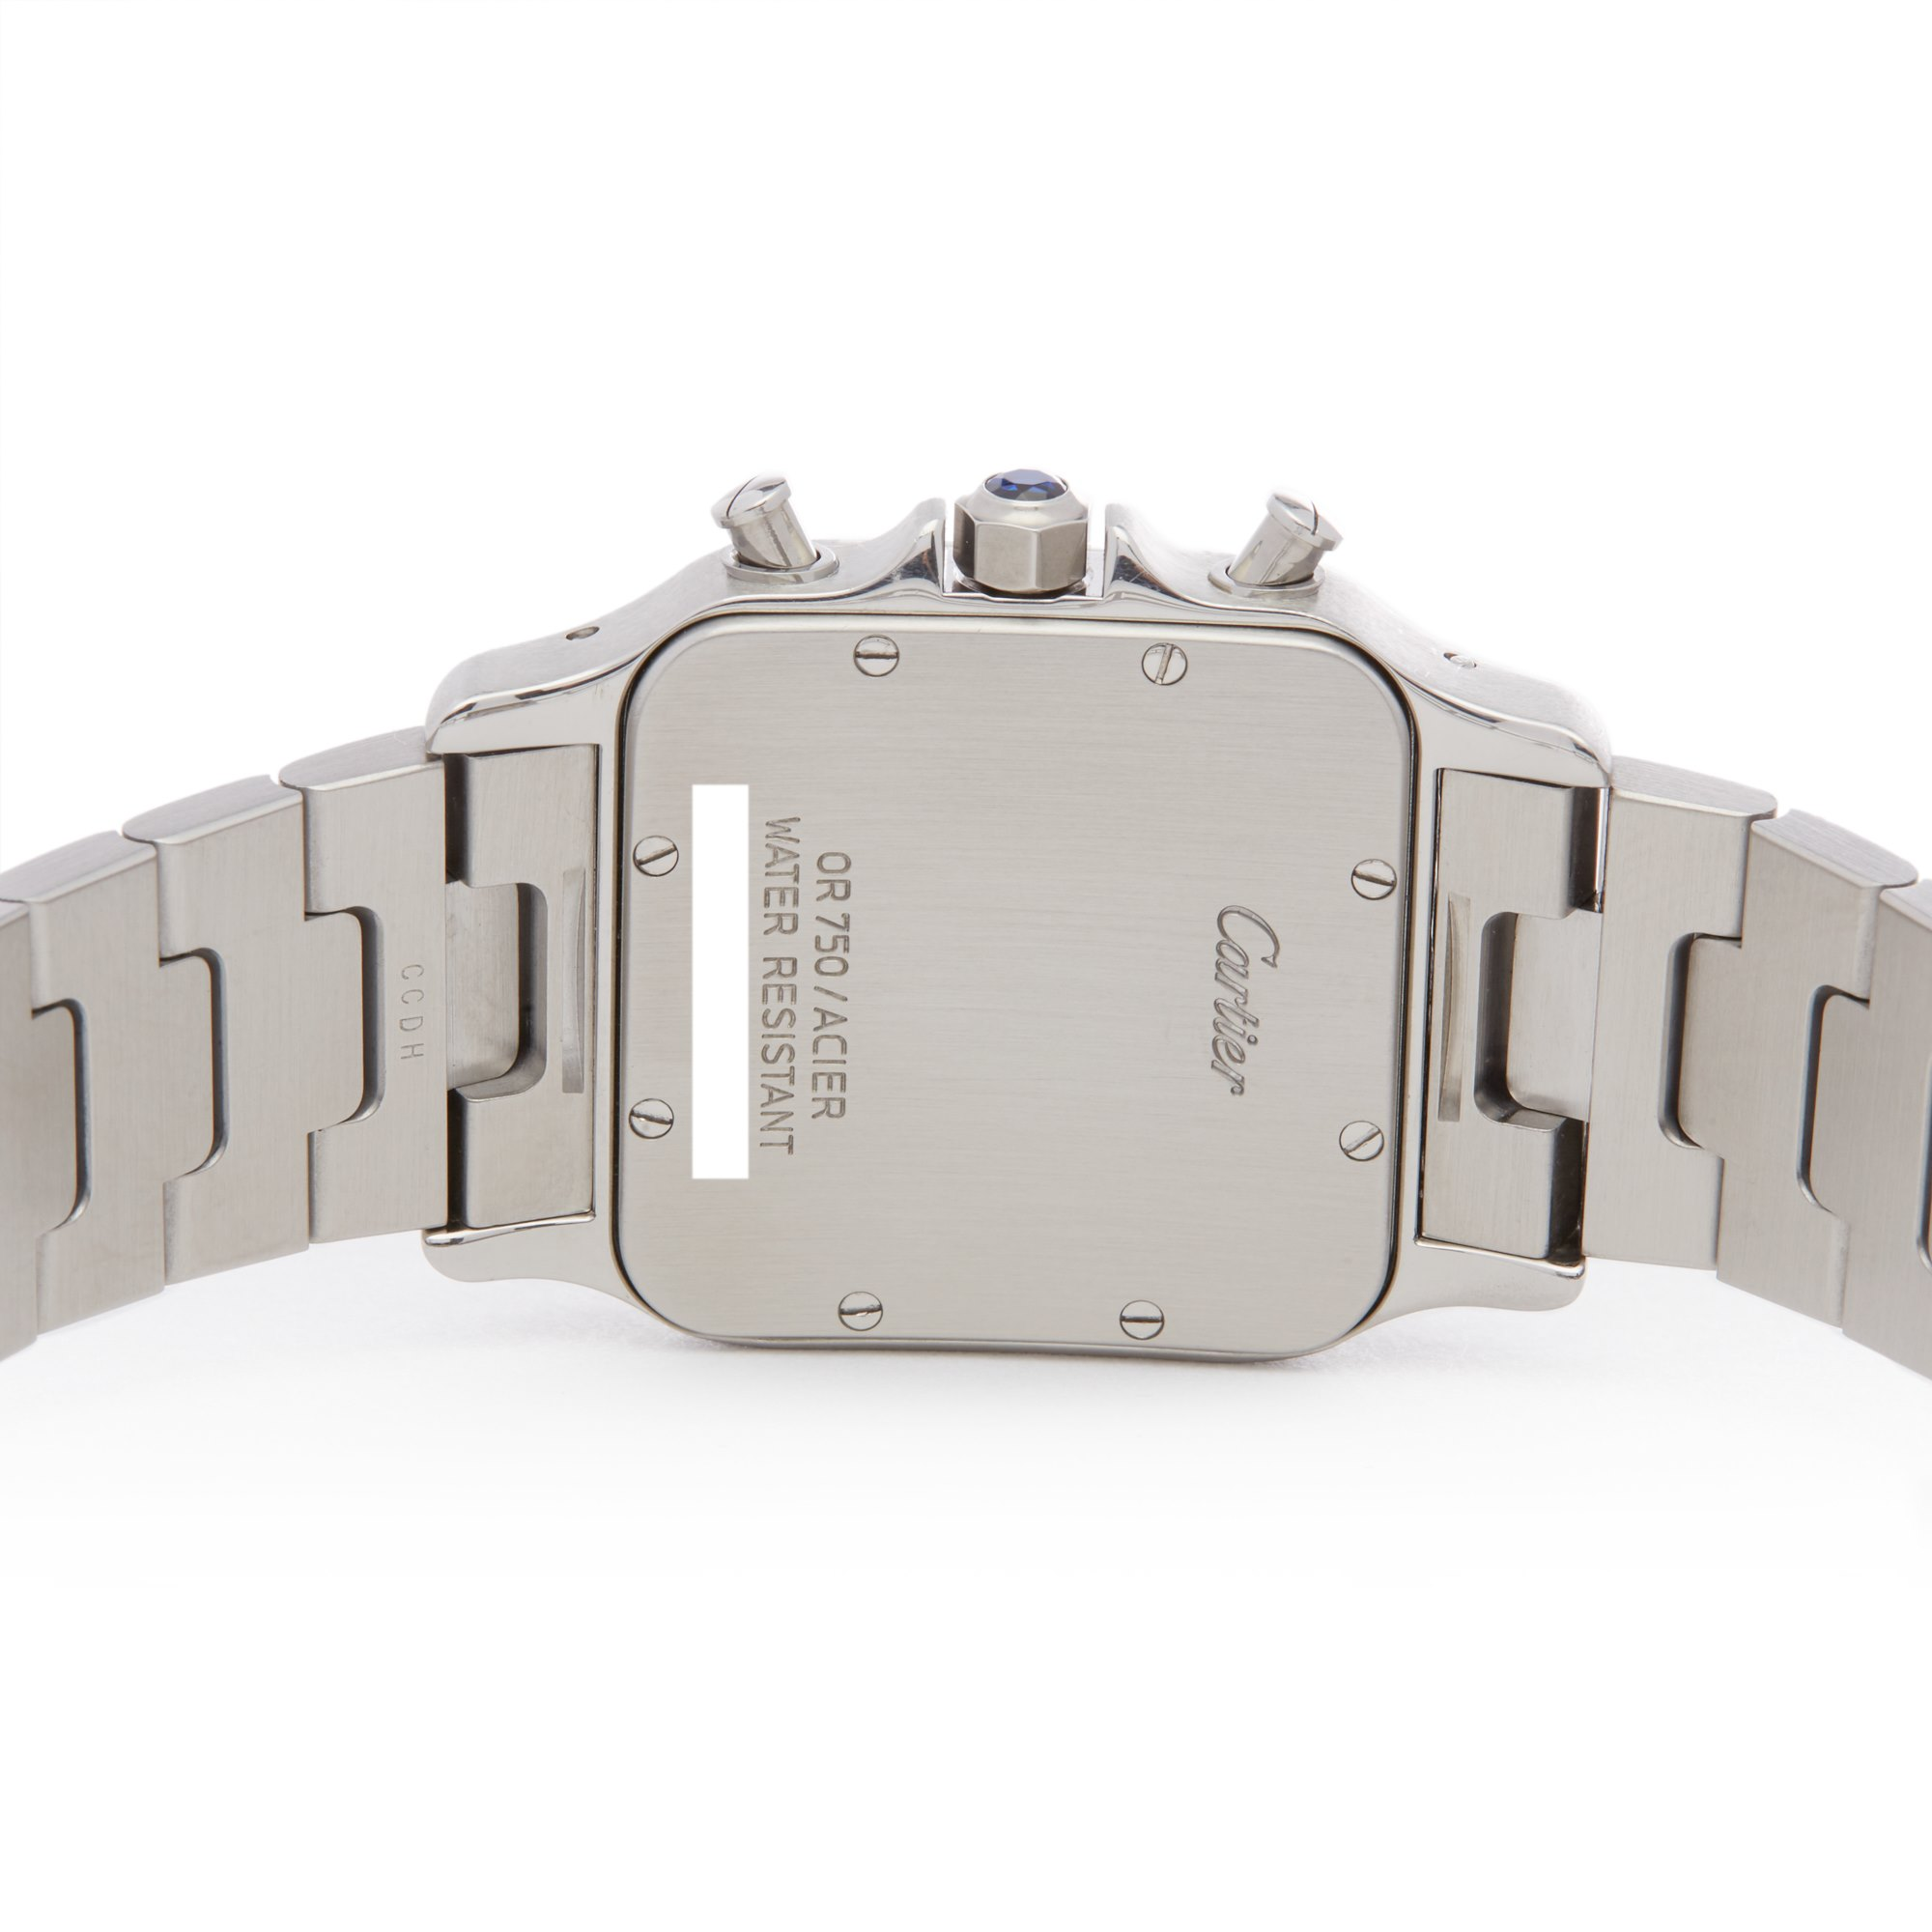 Lot 12 - Cartier Santos Galbee 2425 or W20042C403 Unisex Stainless Steel & Yellow Gold Chronograph Watch